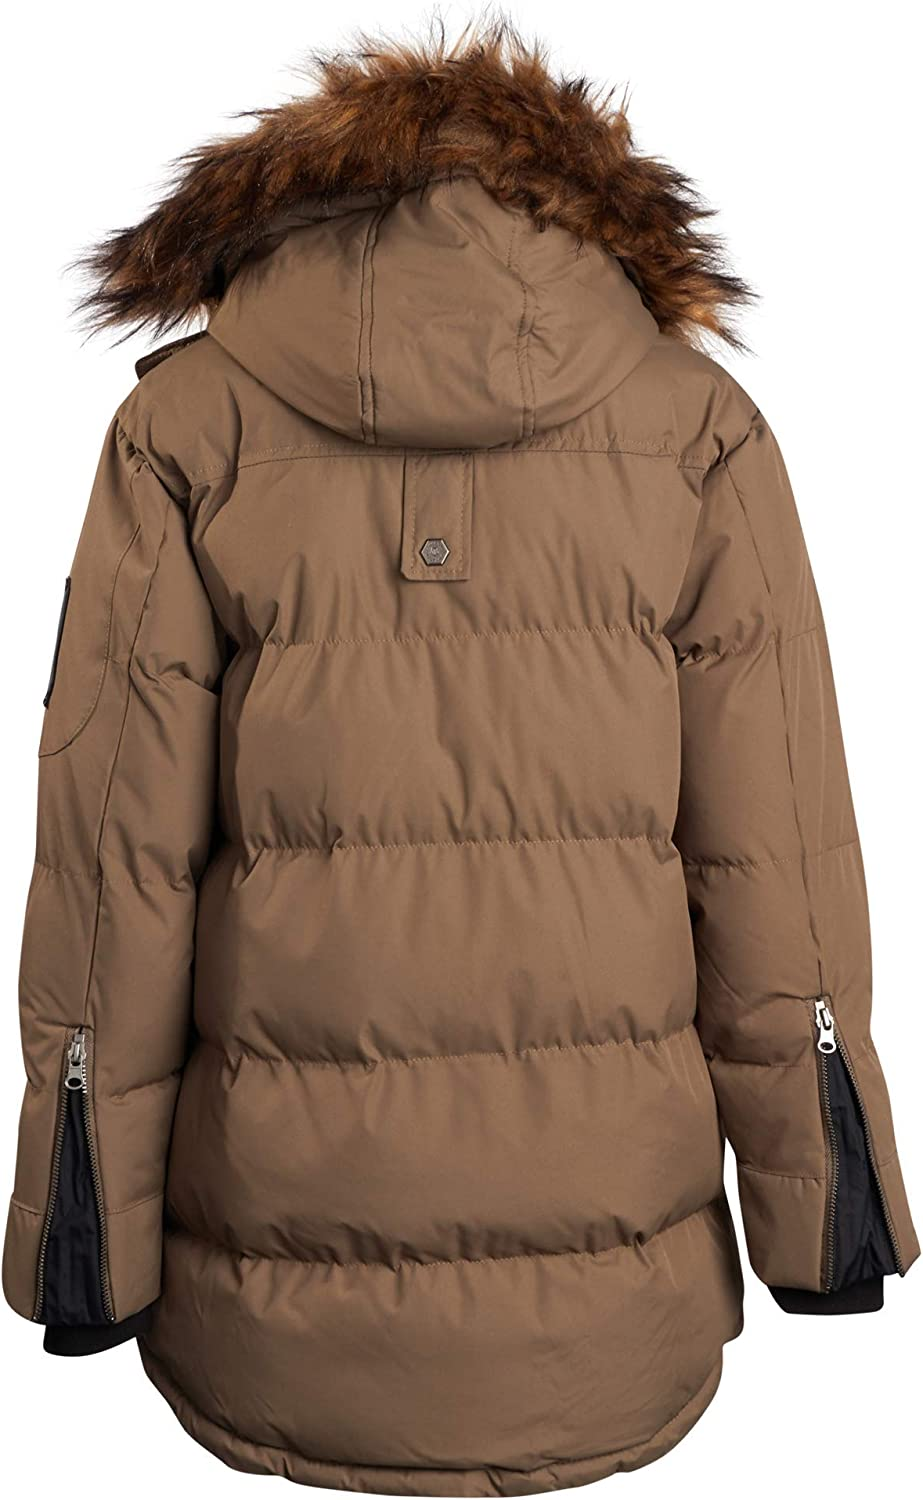 J Whistler Boys Heavyweight Parka Puffer Jacket with Removable Hood